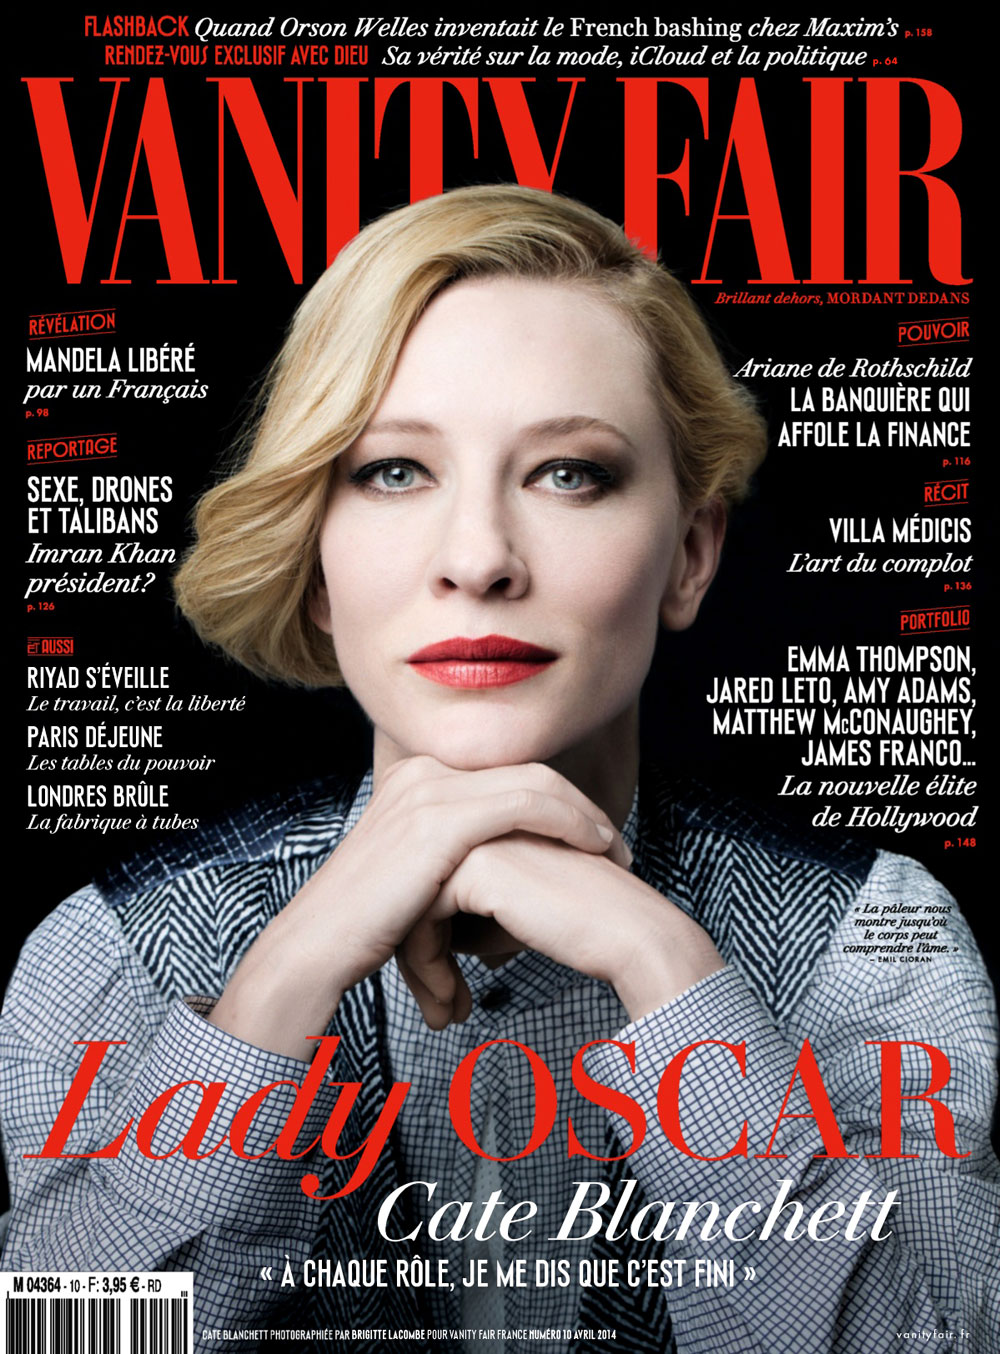 Cate-Blanchett-Vanity-Fair-France-Magazine-April-2014-Tom-Lorenzo-Site-TLO (1)